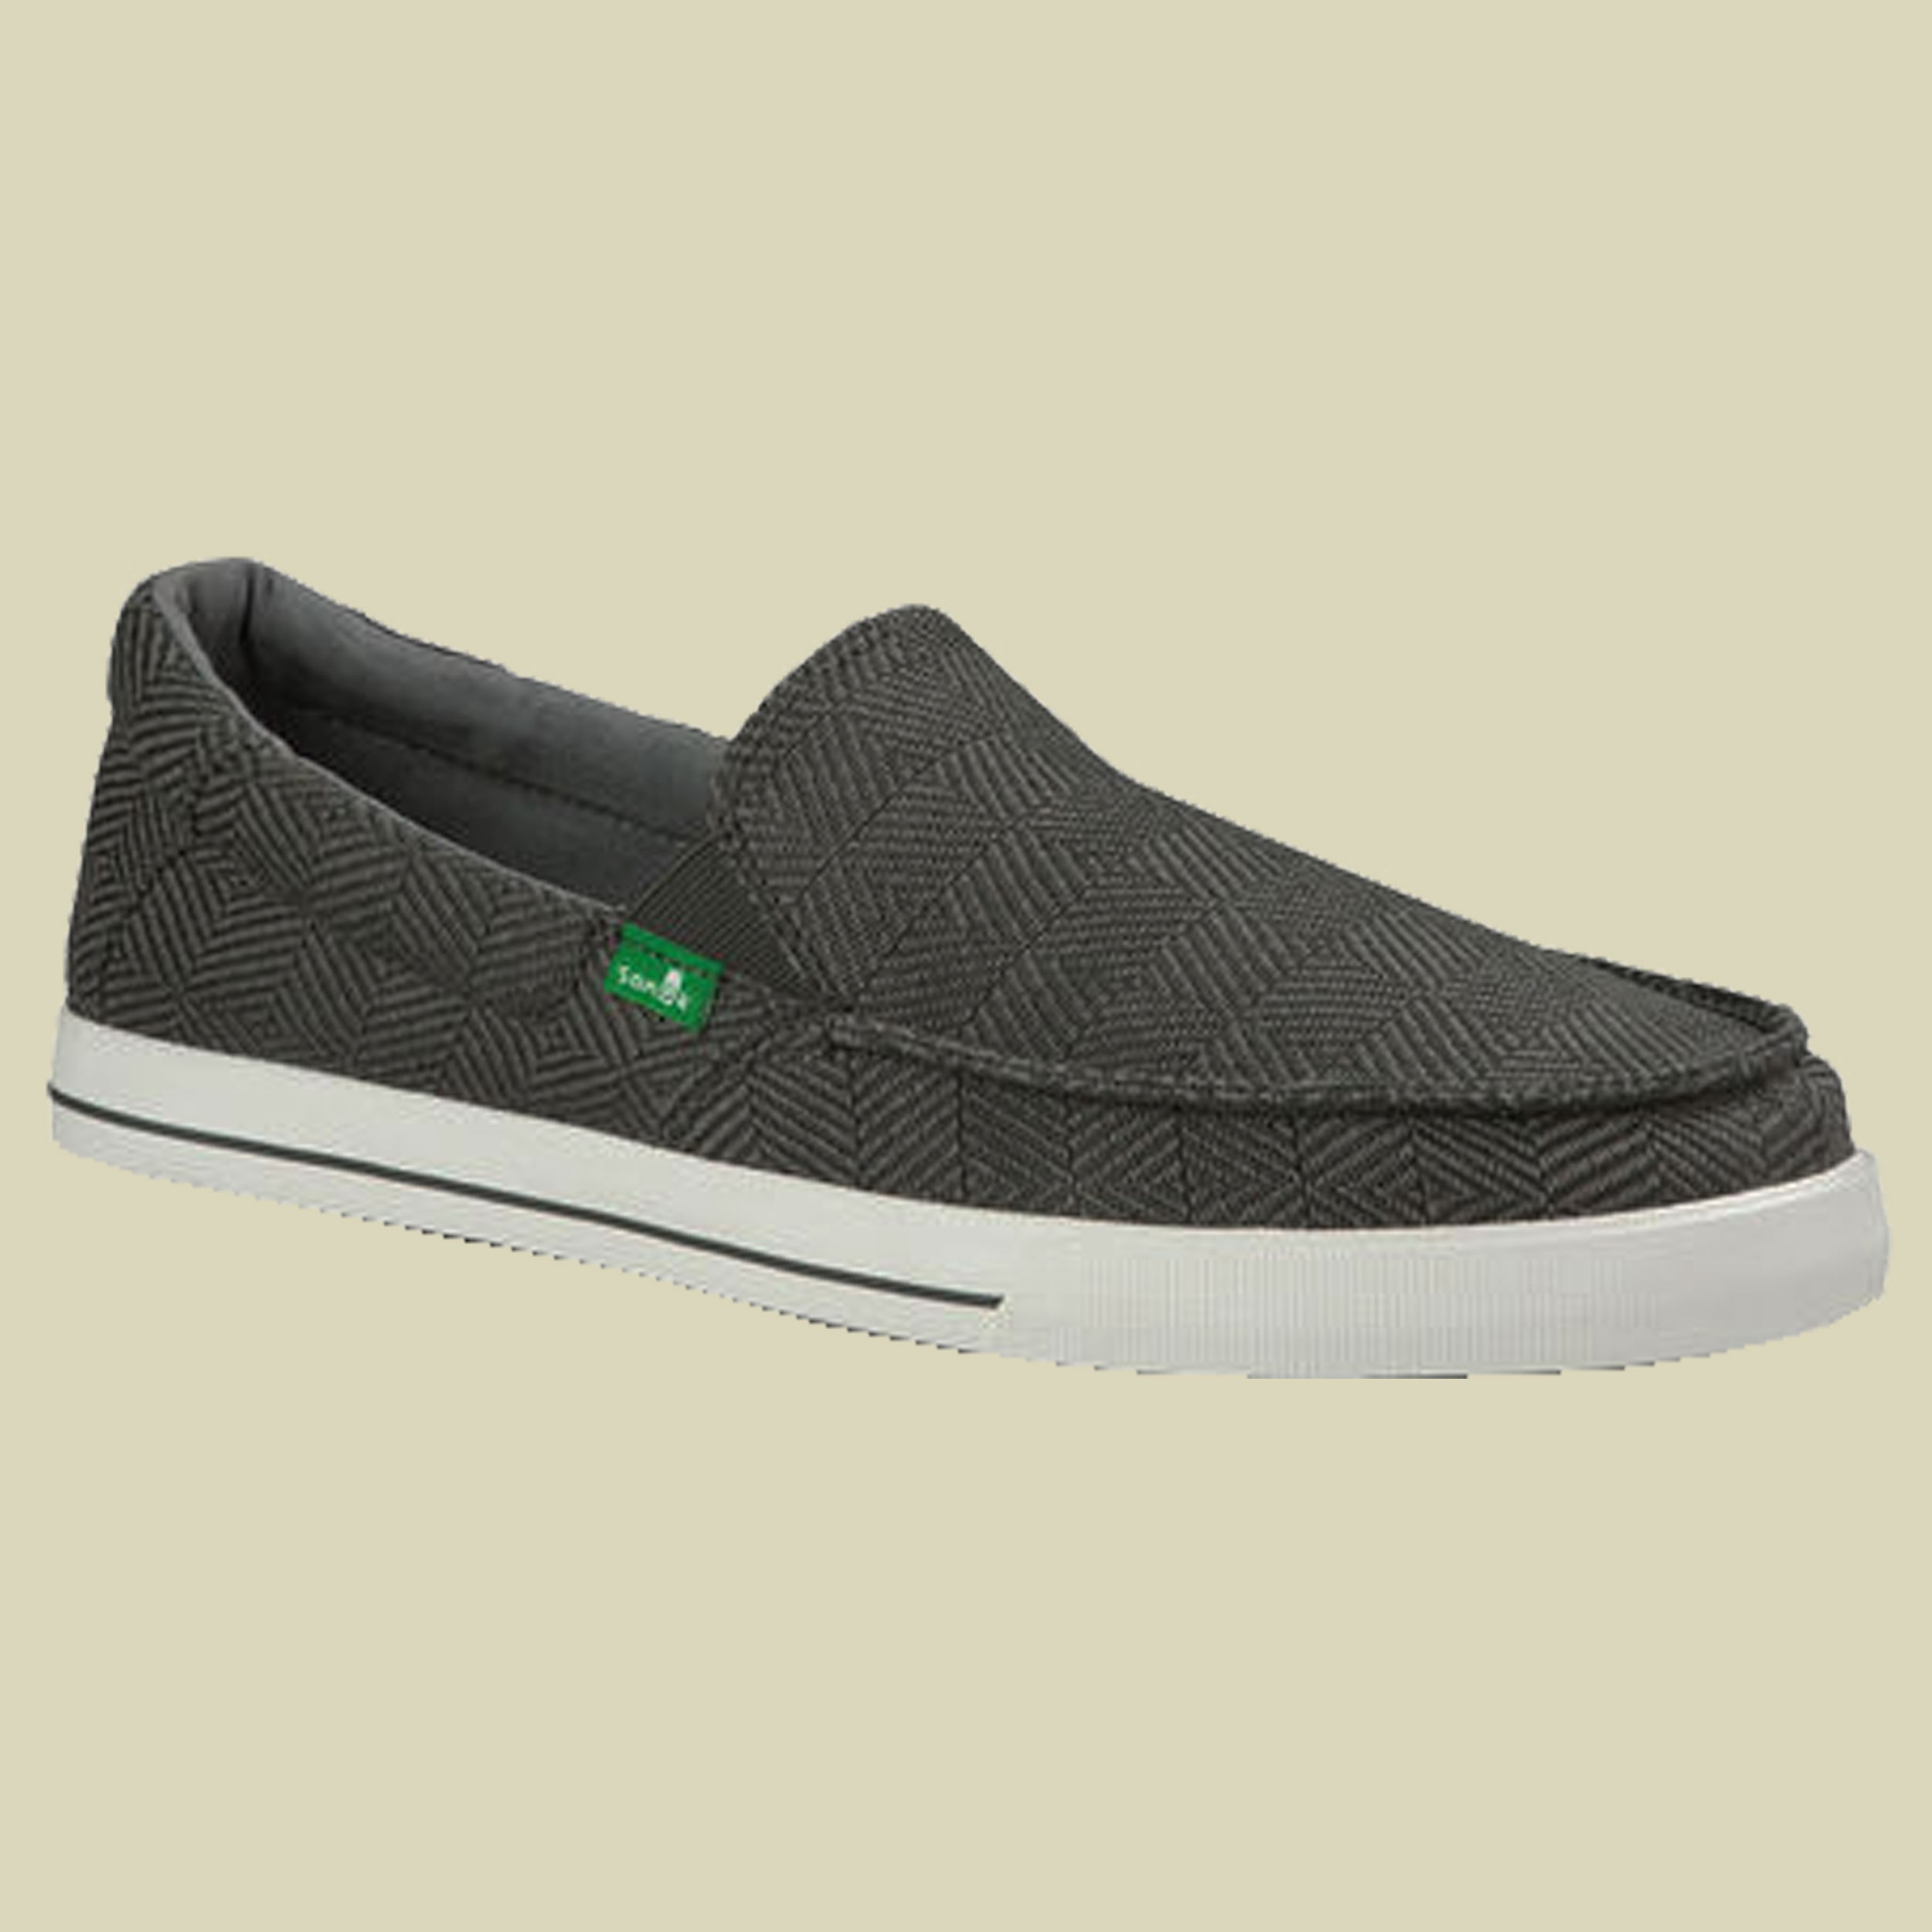 Sideline Checked Sneakers Men